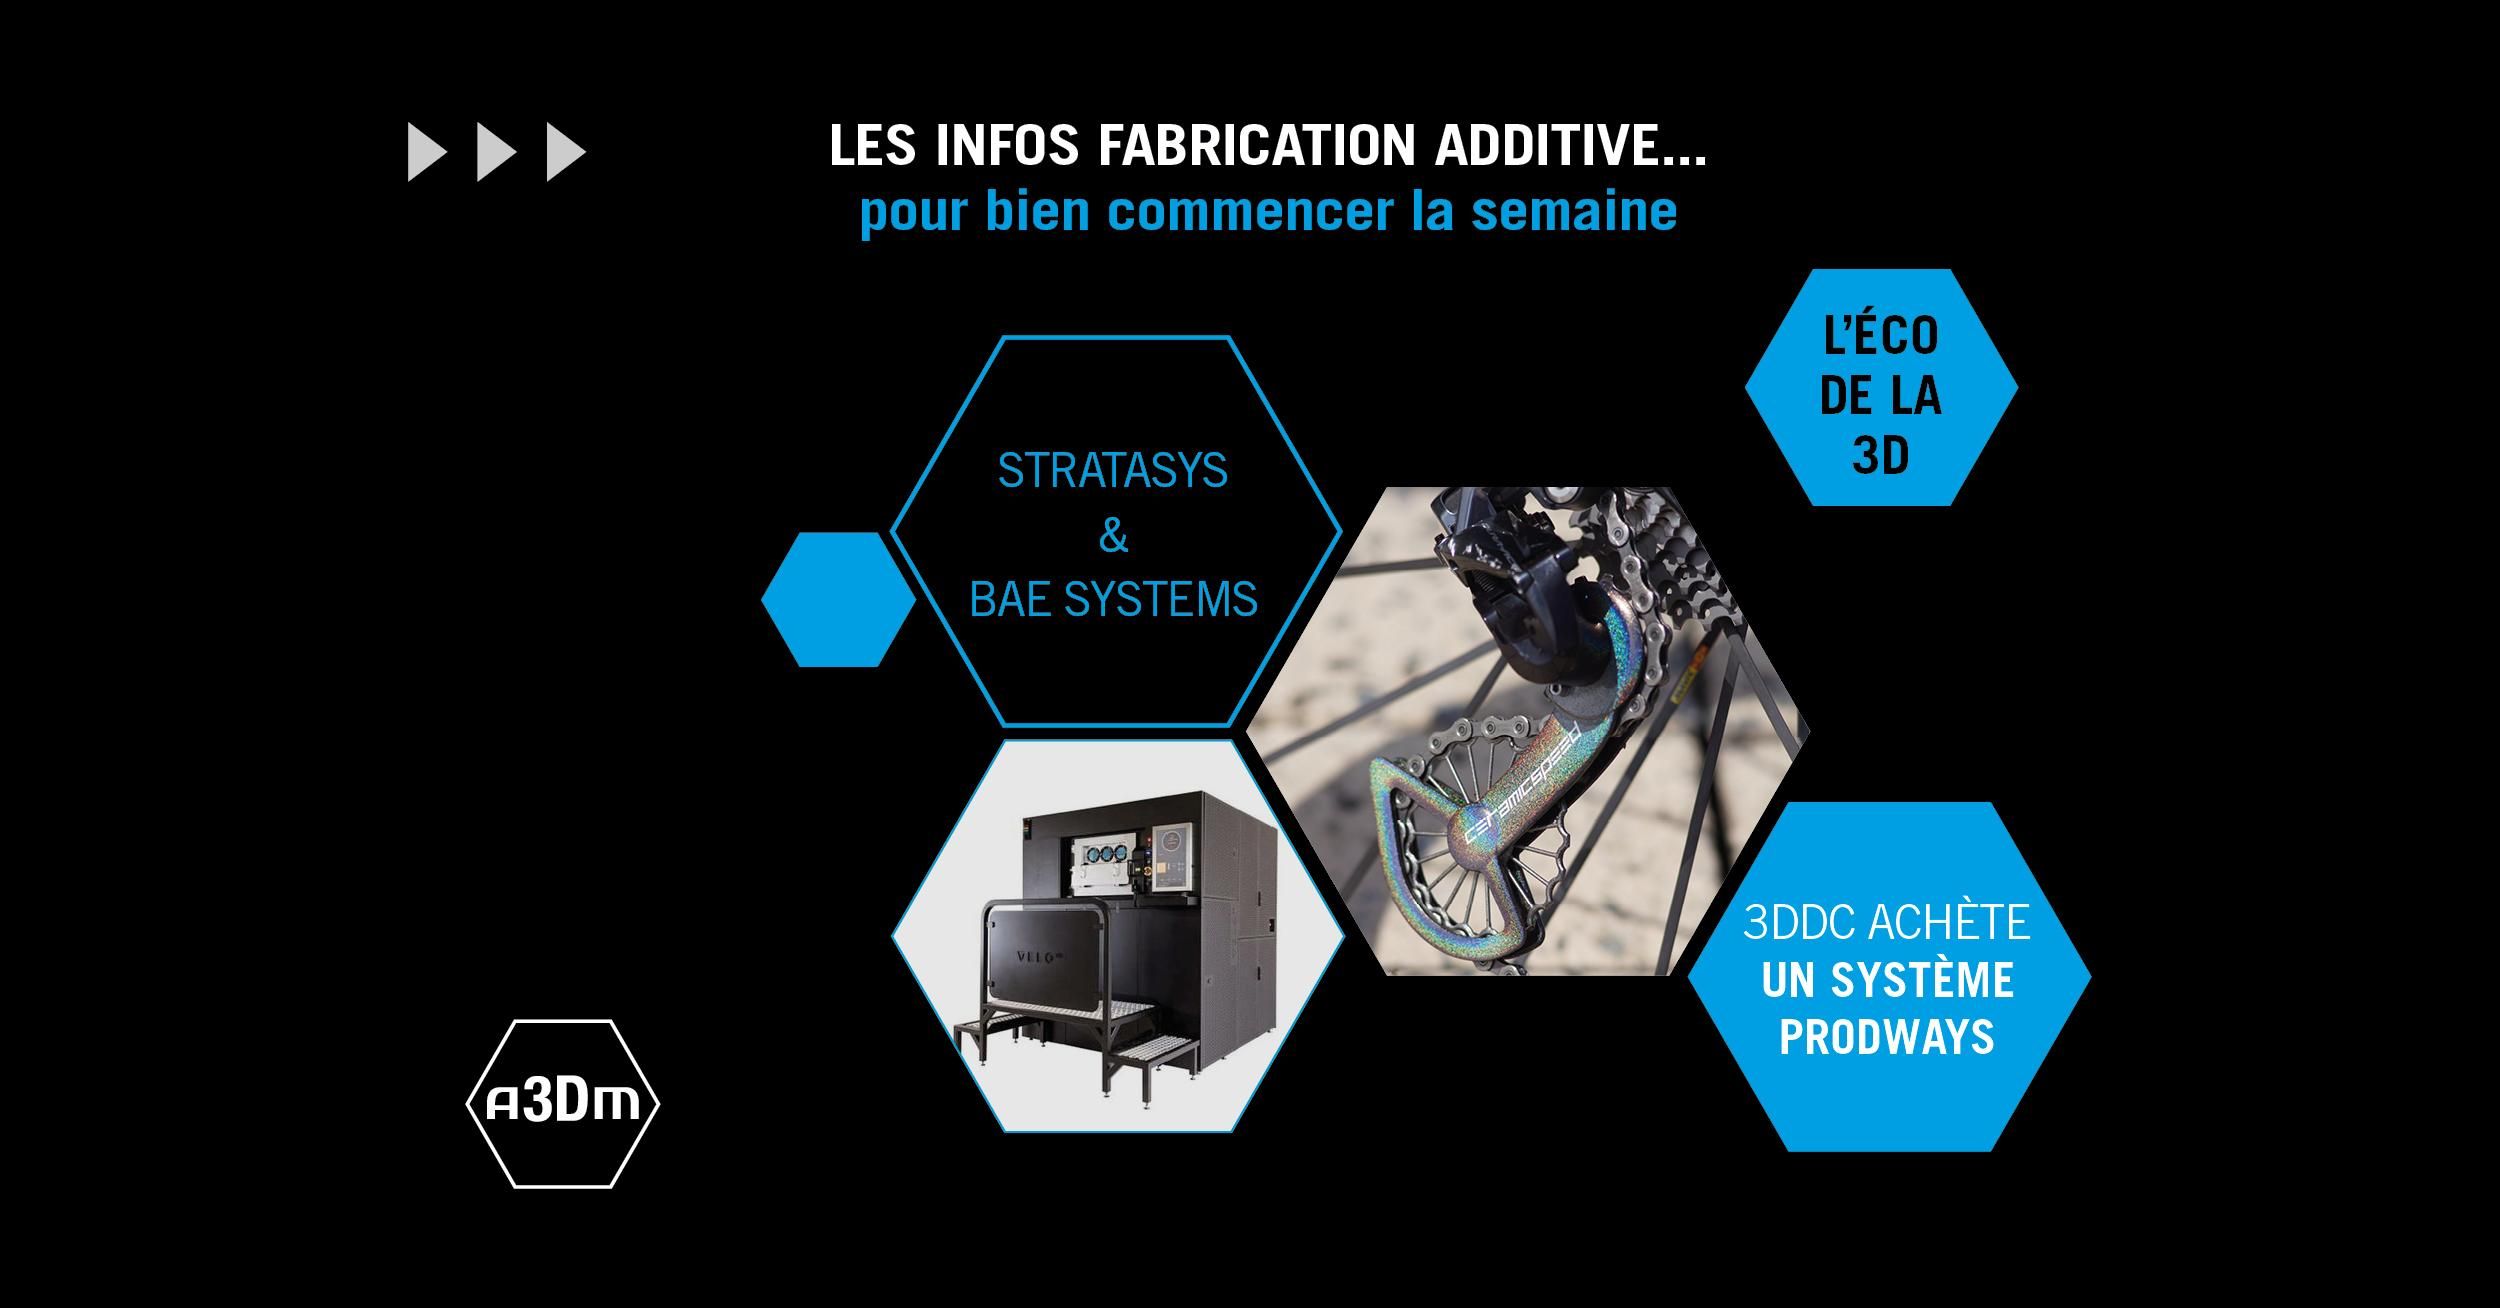 info-fabrication-additive-16